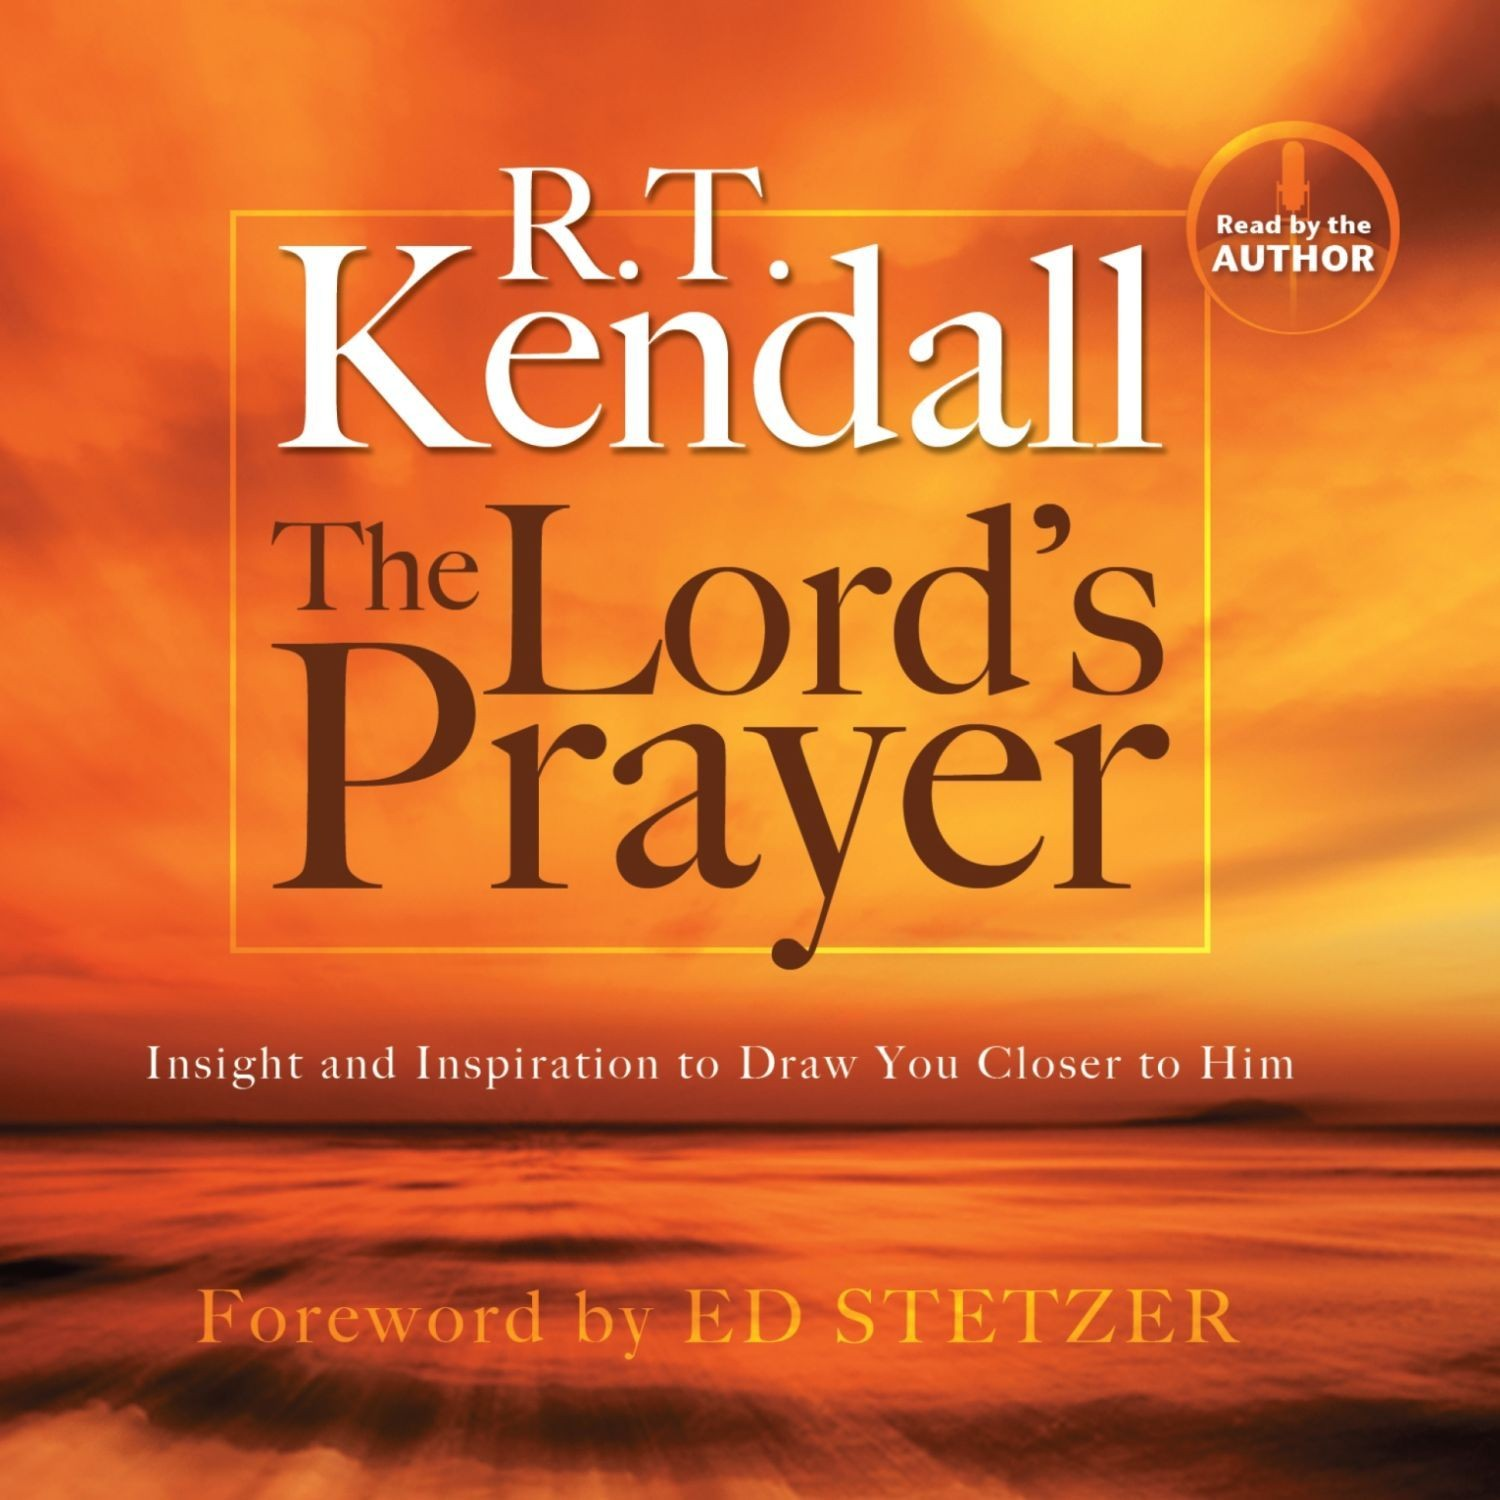 Printable The Lord's Prayer: Insight and Inspiration to Draw You Closer to Him Audiobook Cover Art